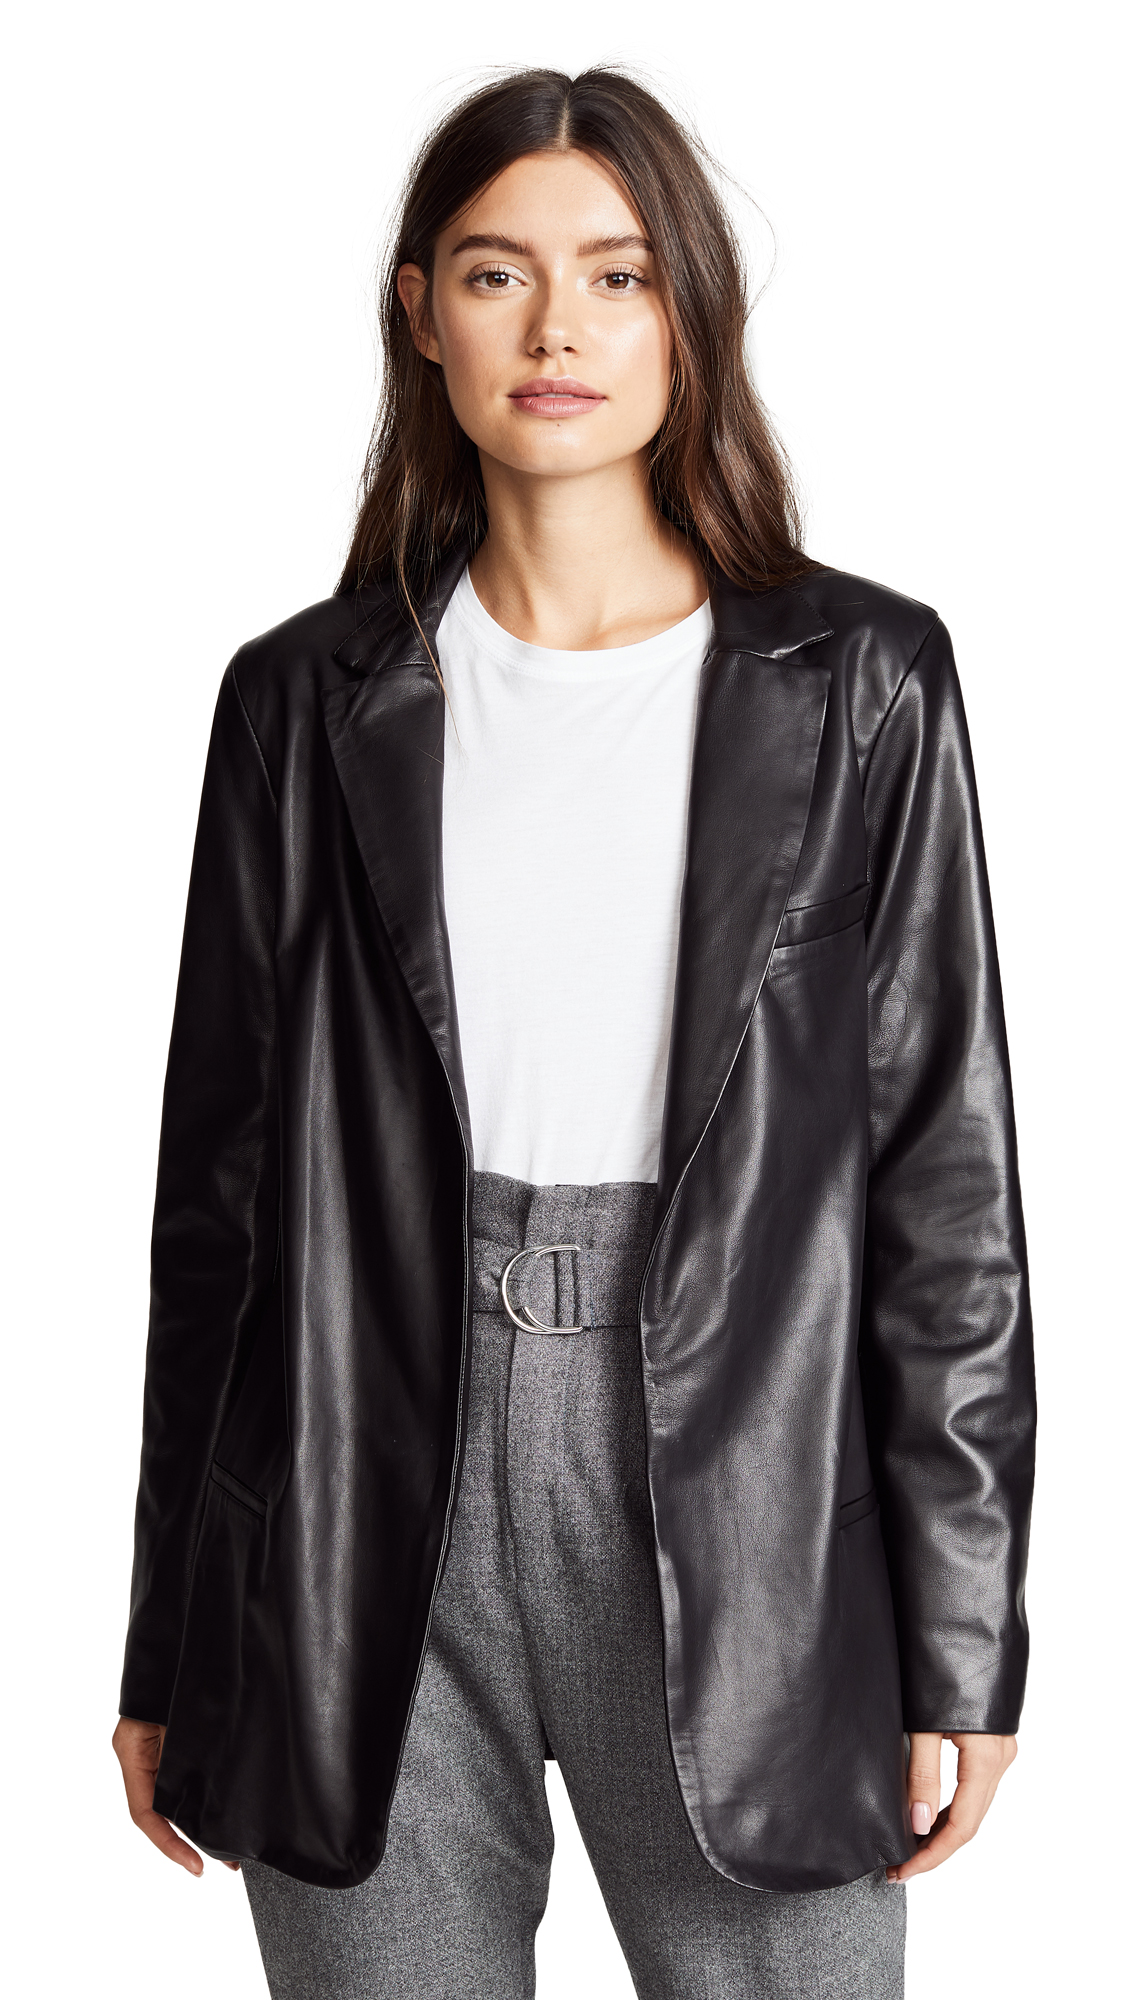 SABLYN MAGNOLIA LEATHER BLAZER